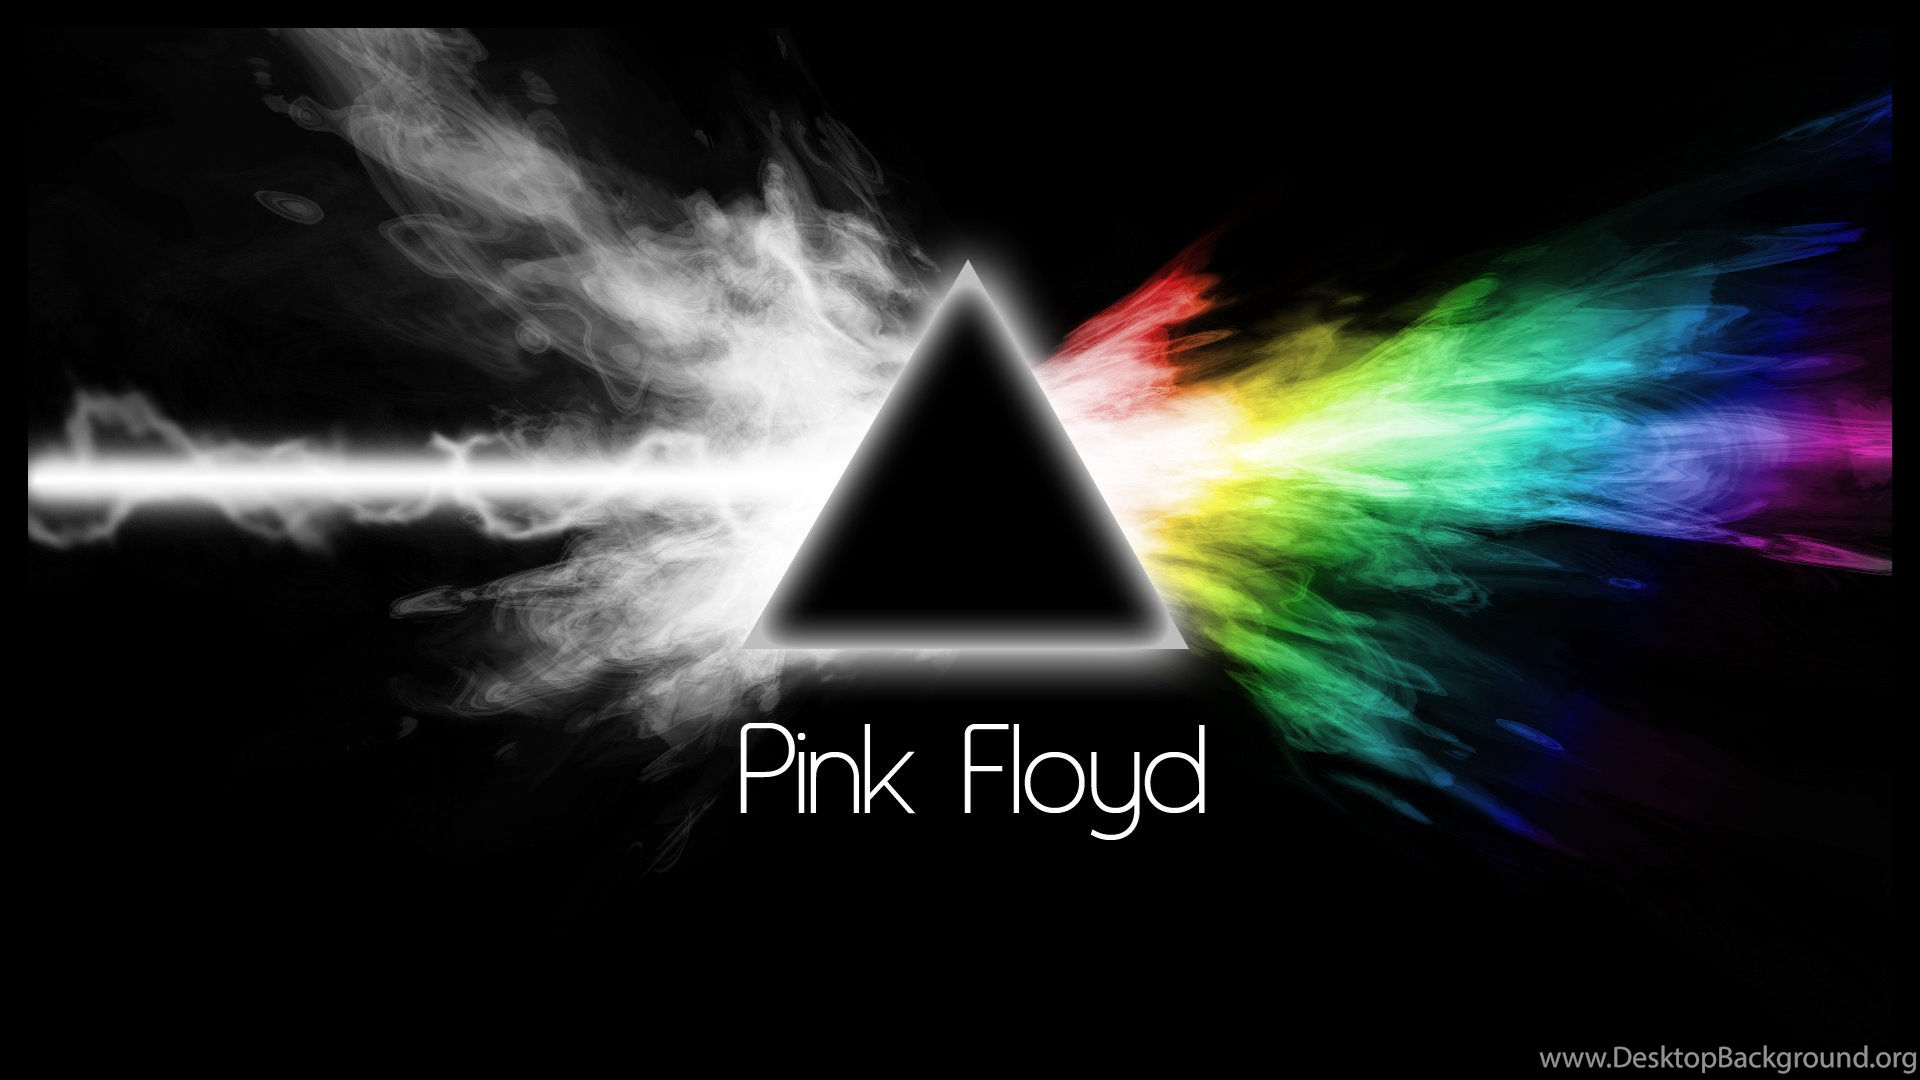 Pink Floyd Tumblr Backgrounds Invitation Templates Desktop Background